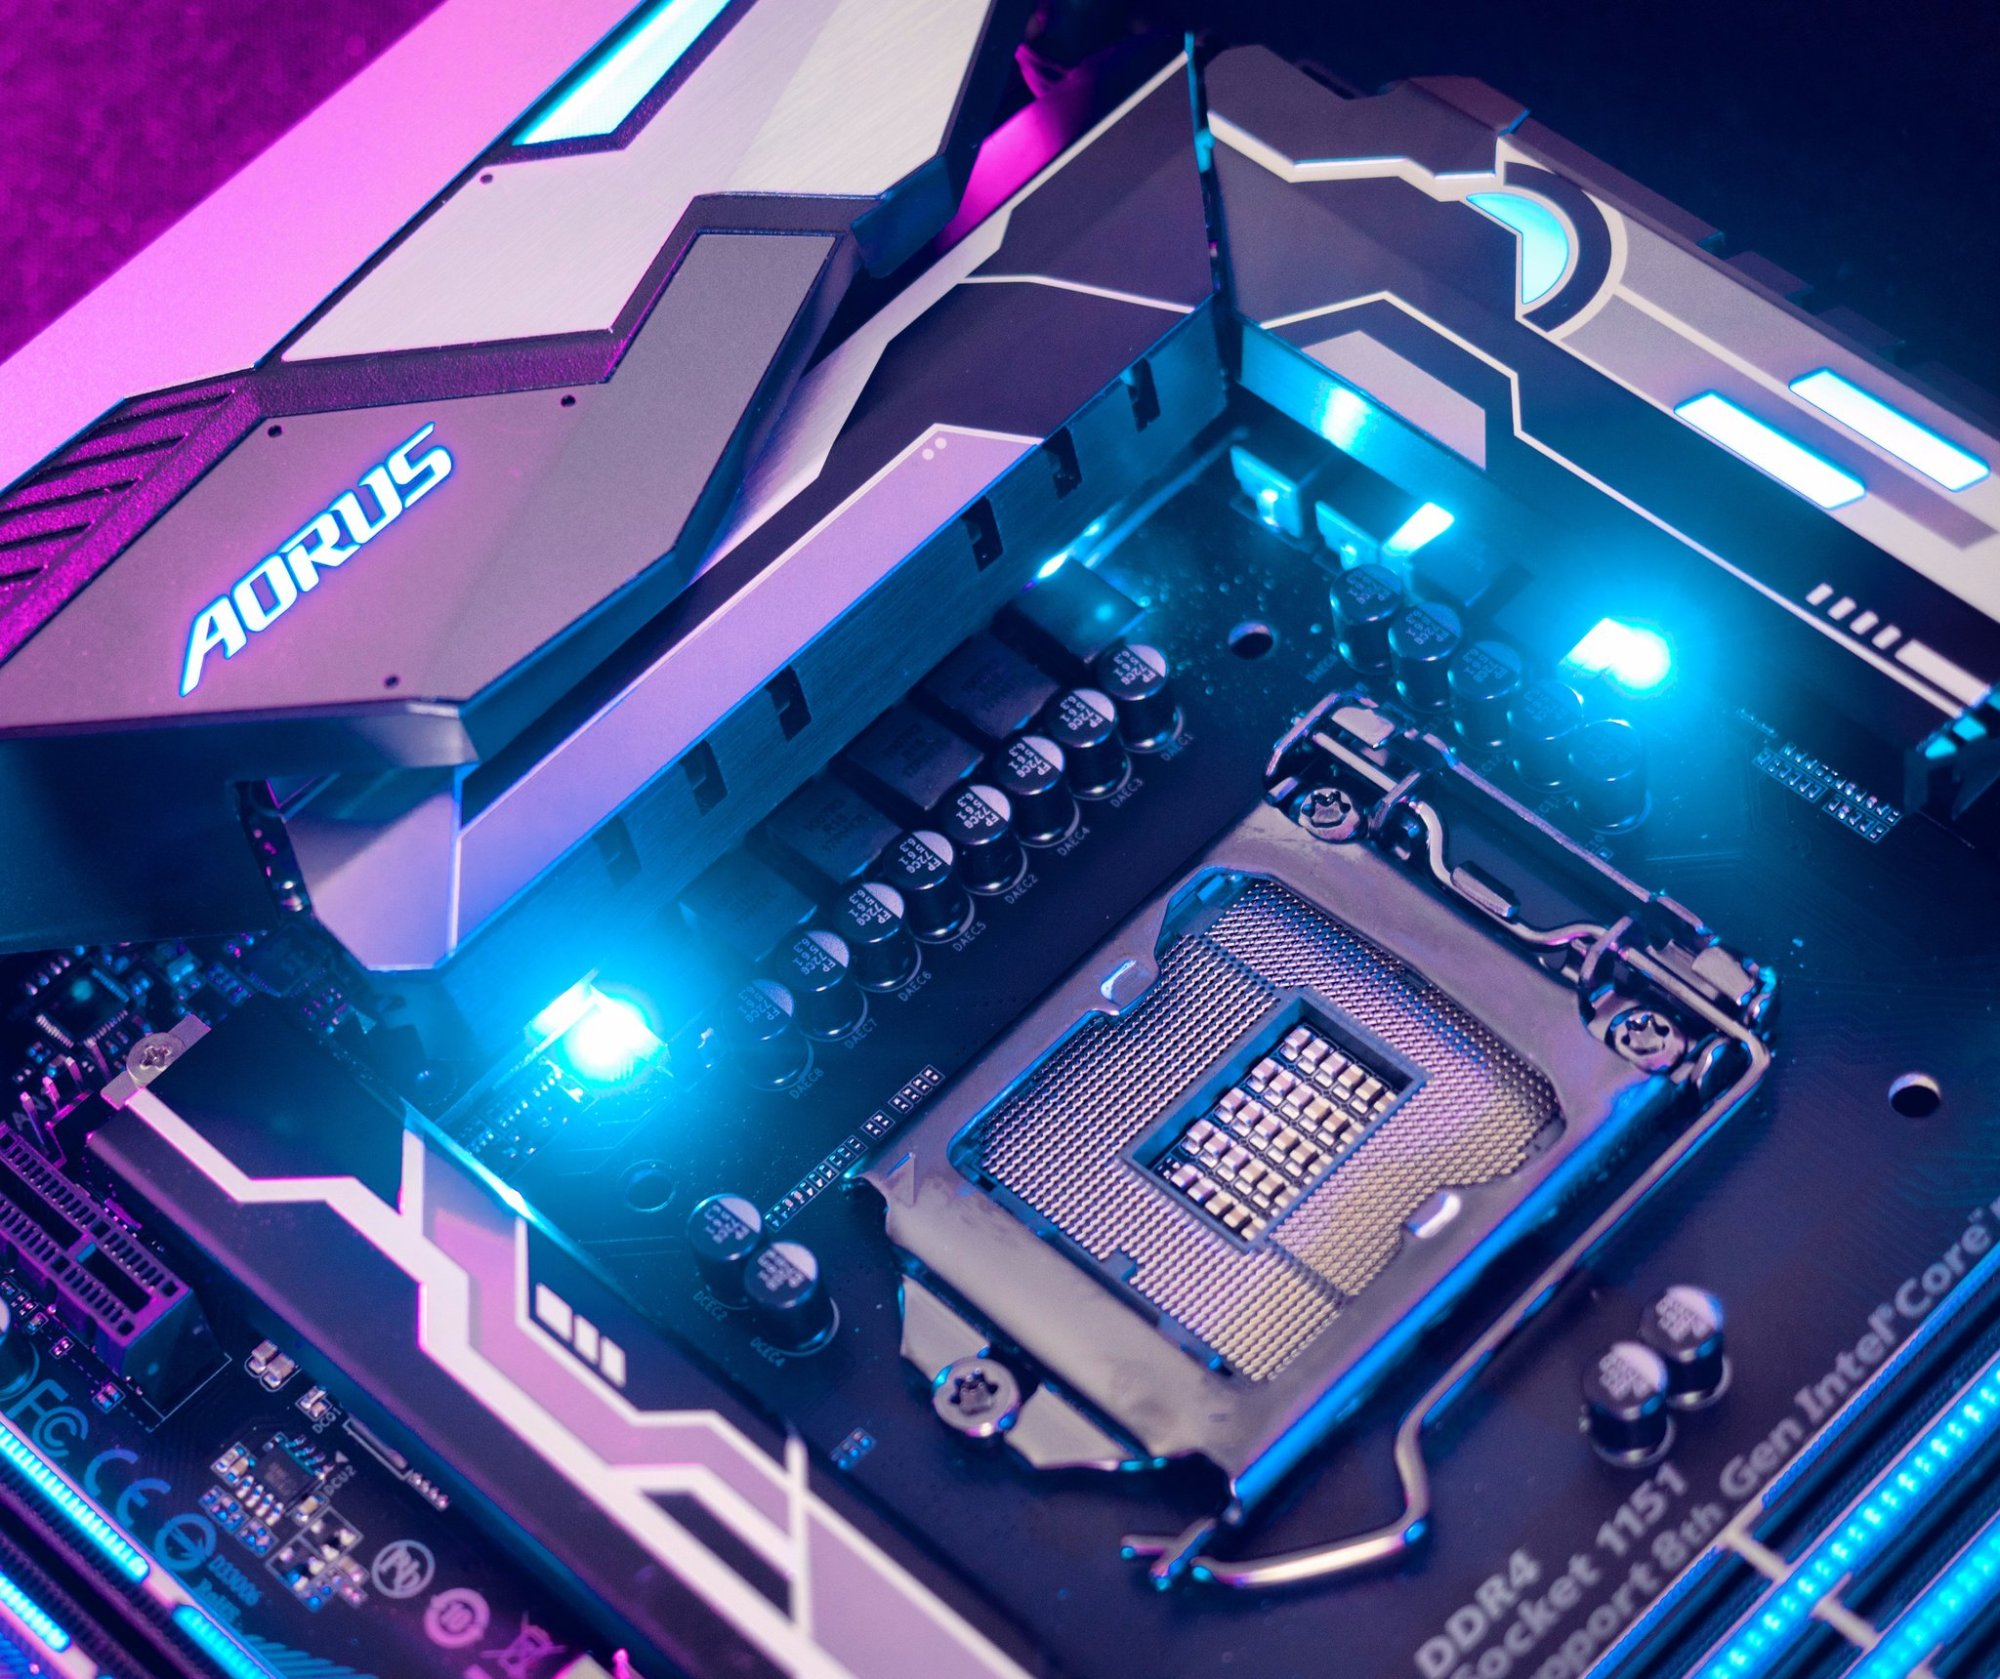 hight resolution of intel confirmed in their official coffee lake briefing that the new processors use a vastly different pin configuration compared to previous generation